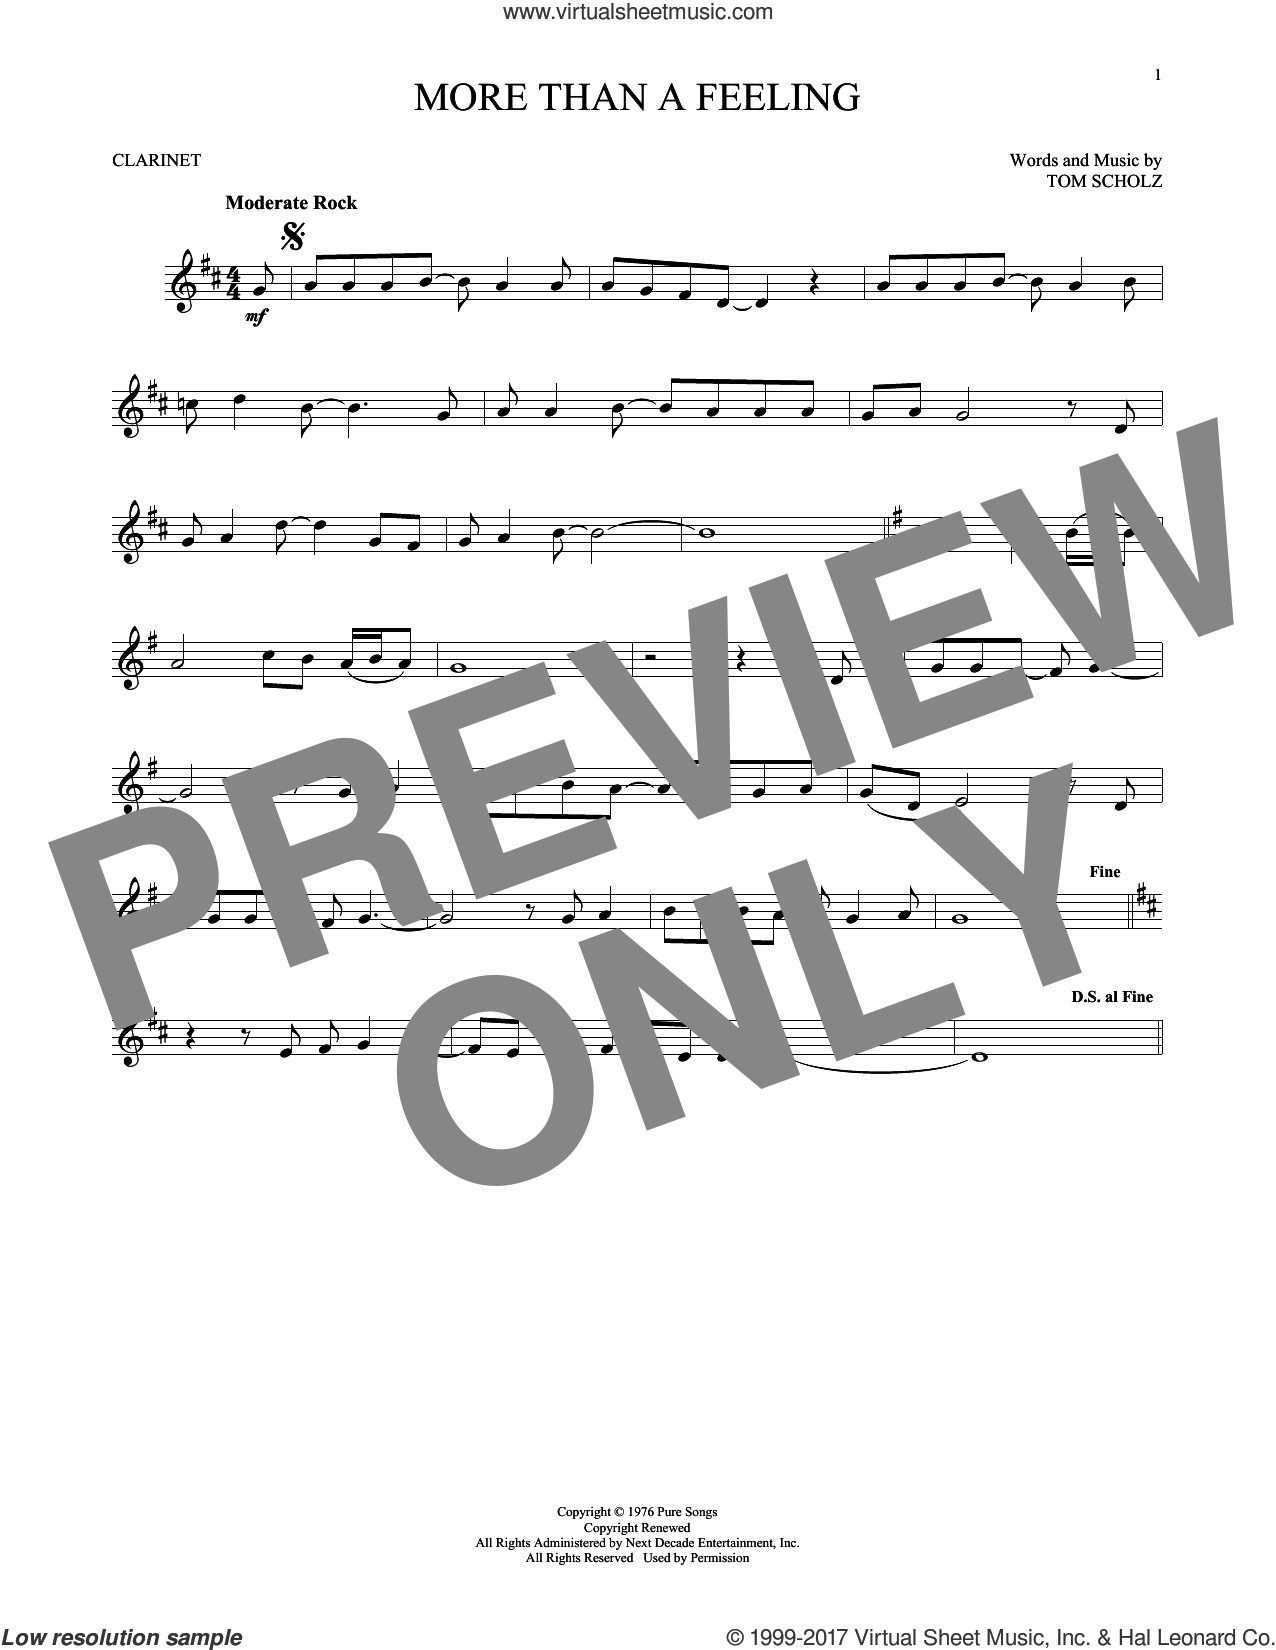 More Than A Feeling sheet music for clarinet solo by Boston and Tom Scholz, intermediate skill level